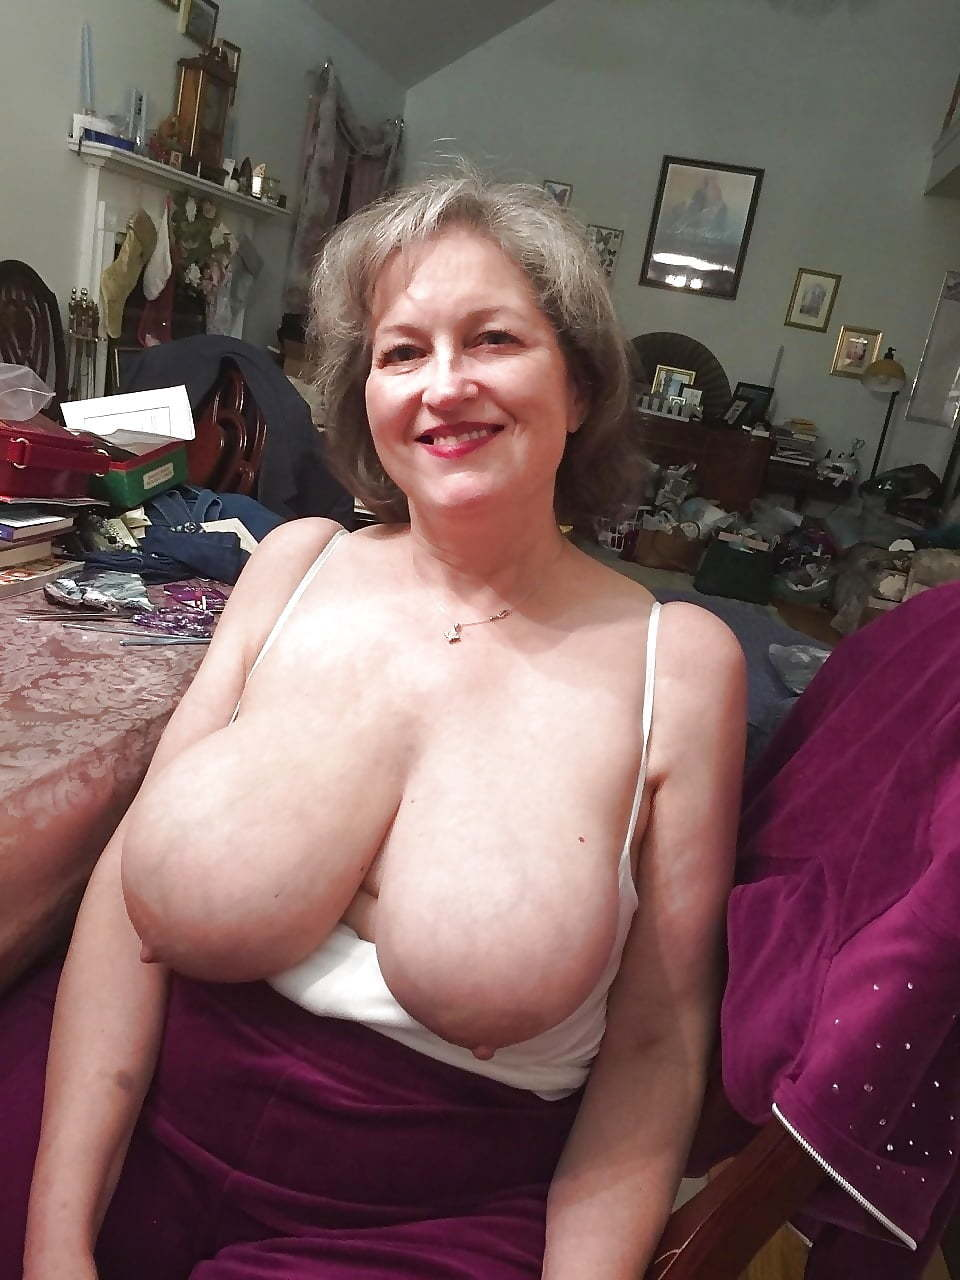 Lovely large tits